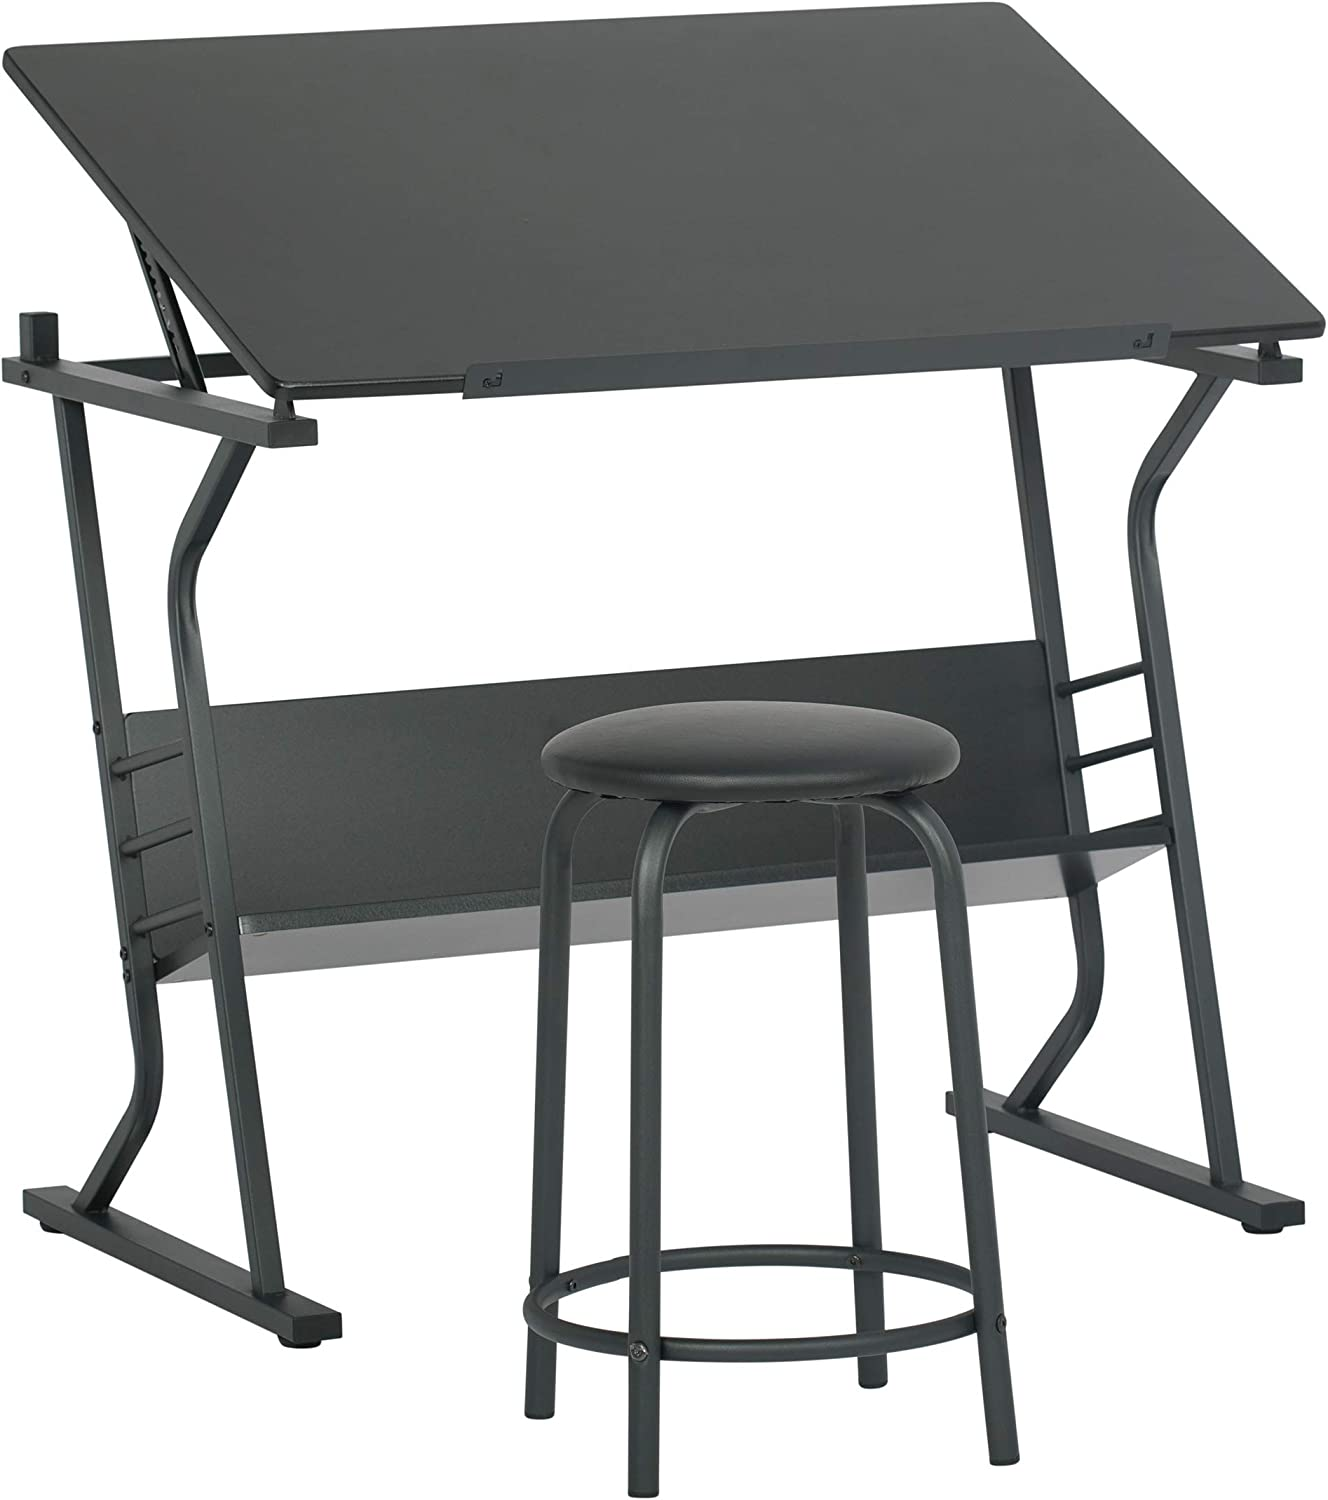 STUDIO DESIGNS Eclipse Table with Stool in Black